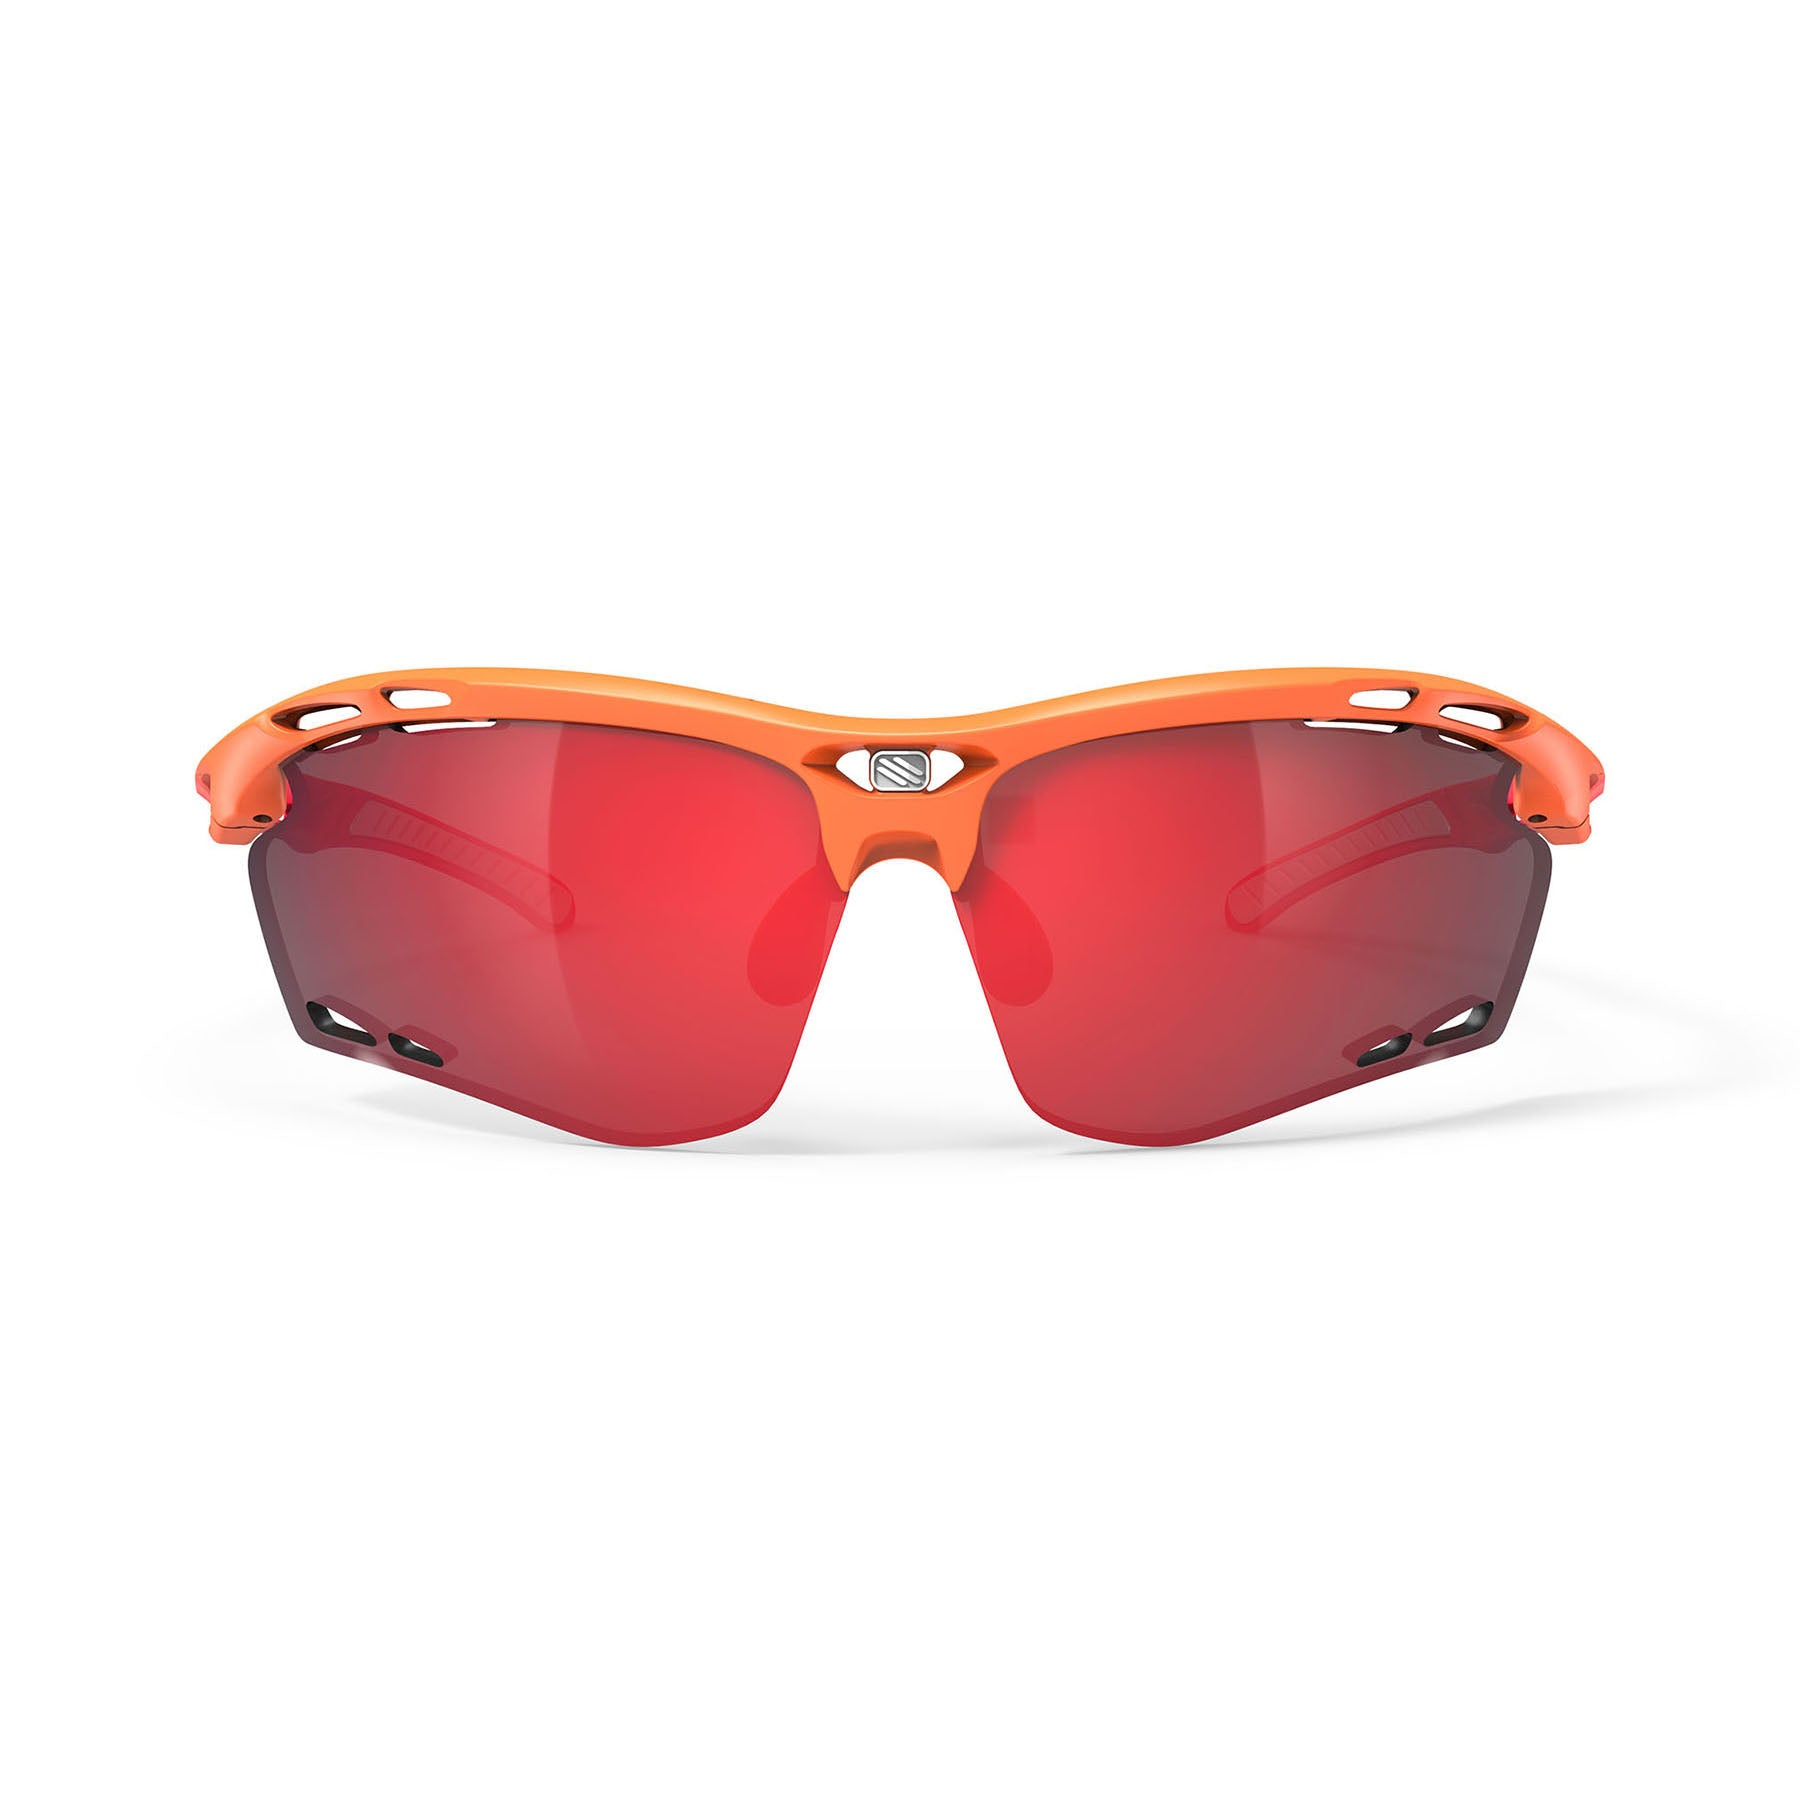 Rudy Project - Propulse - frame color: Pacific Blue Matte - lens color: ImpactX-2 Photochromic Clear to Red - Bumper Color:  - photo angle: Front View Variant Hover Image